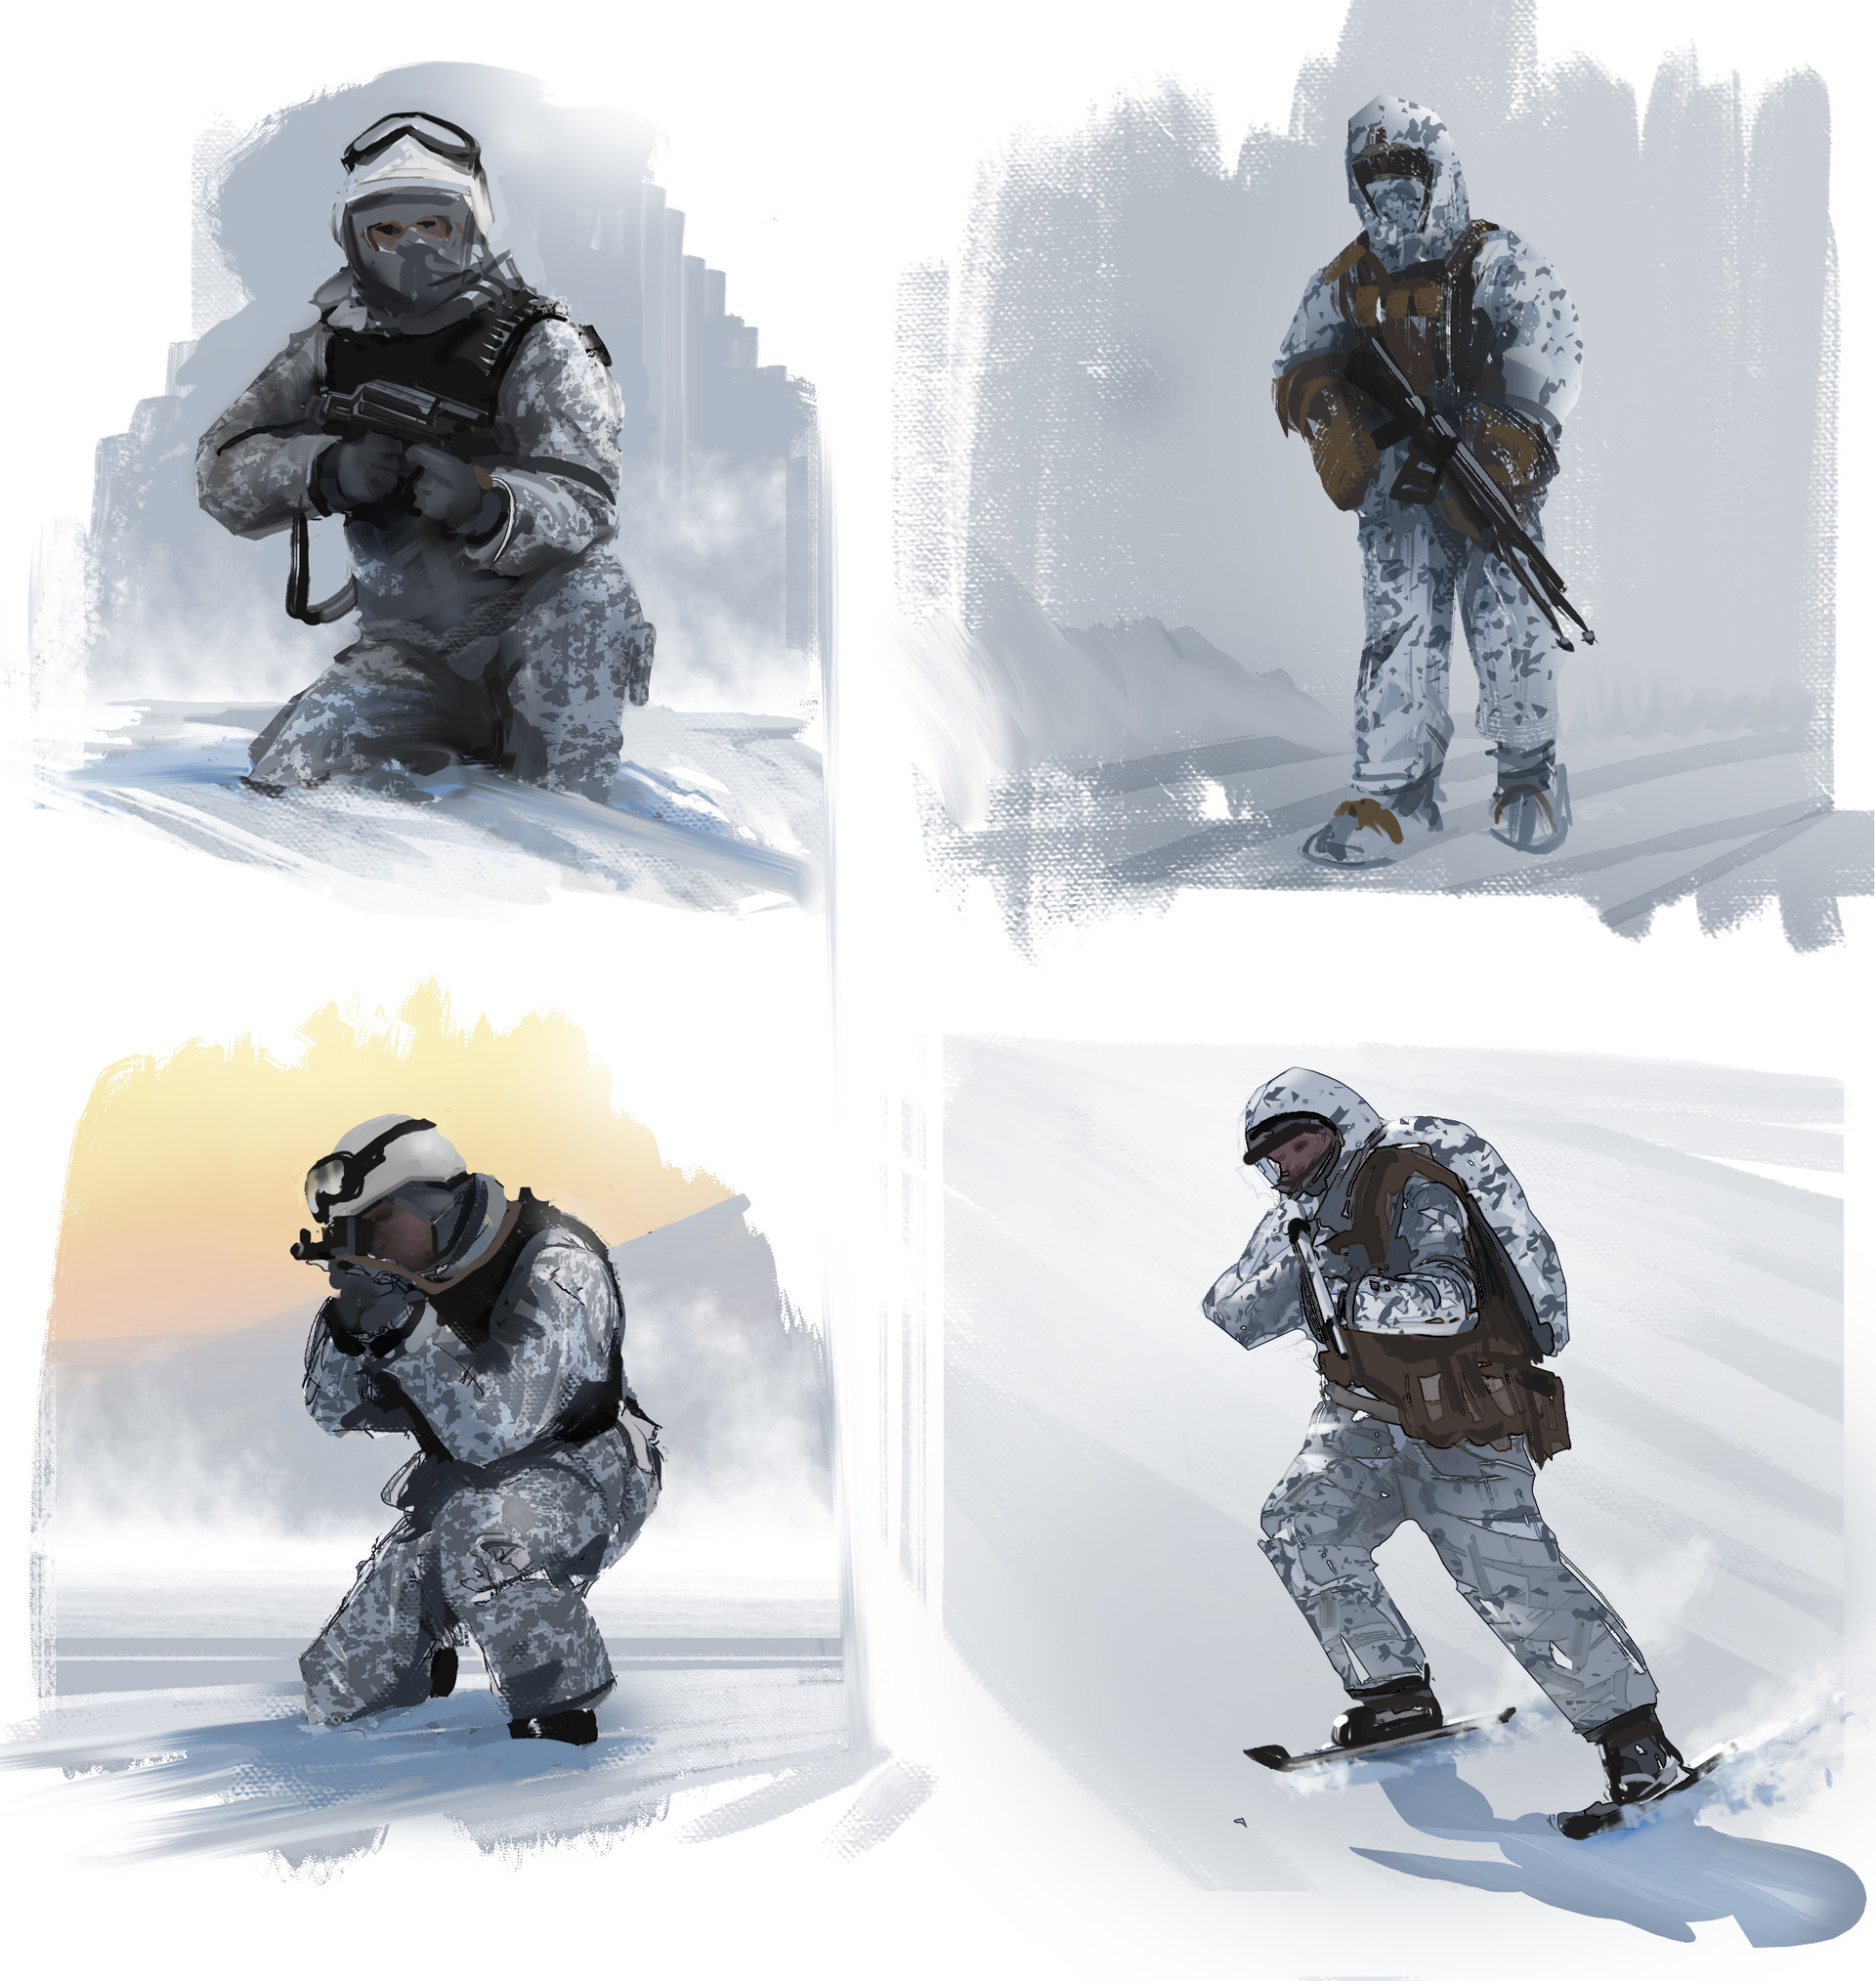 Ran cilento soldier sketches